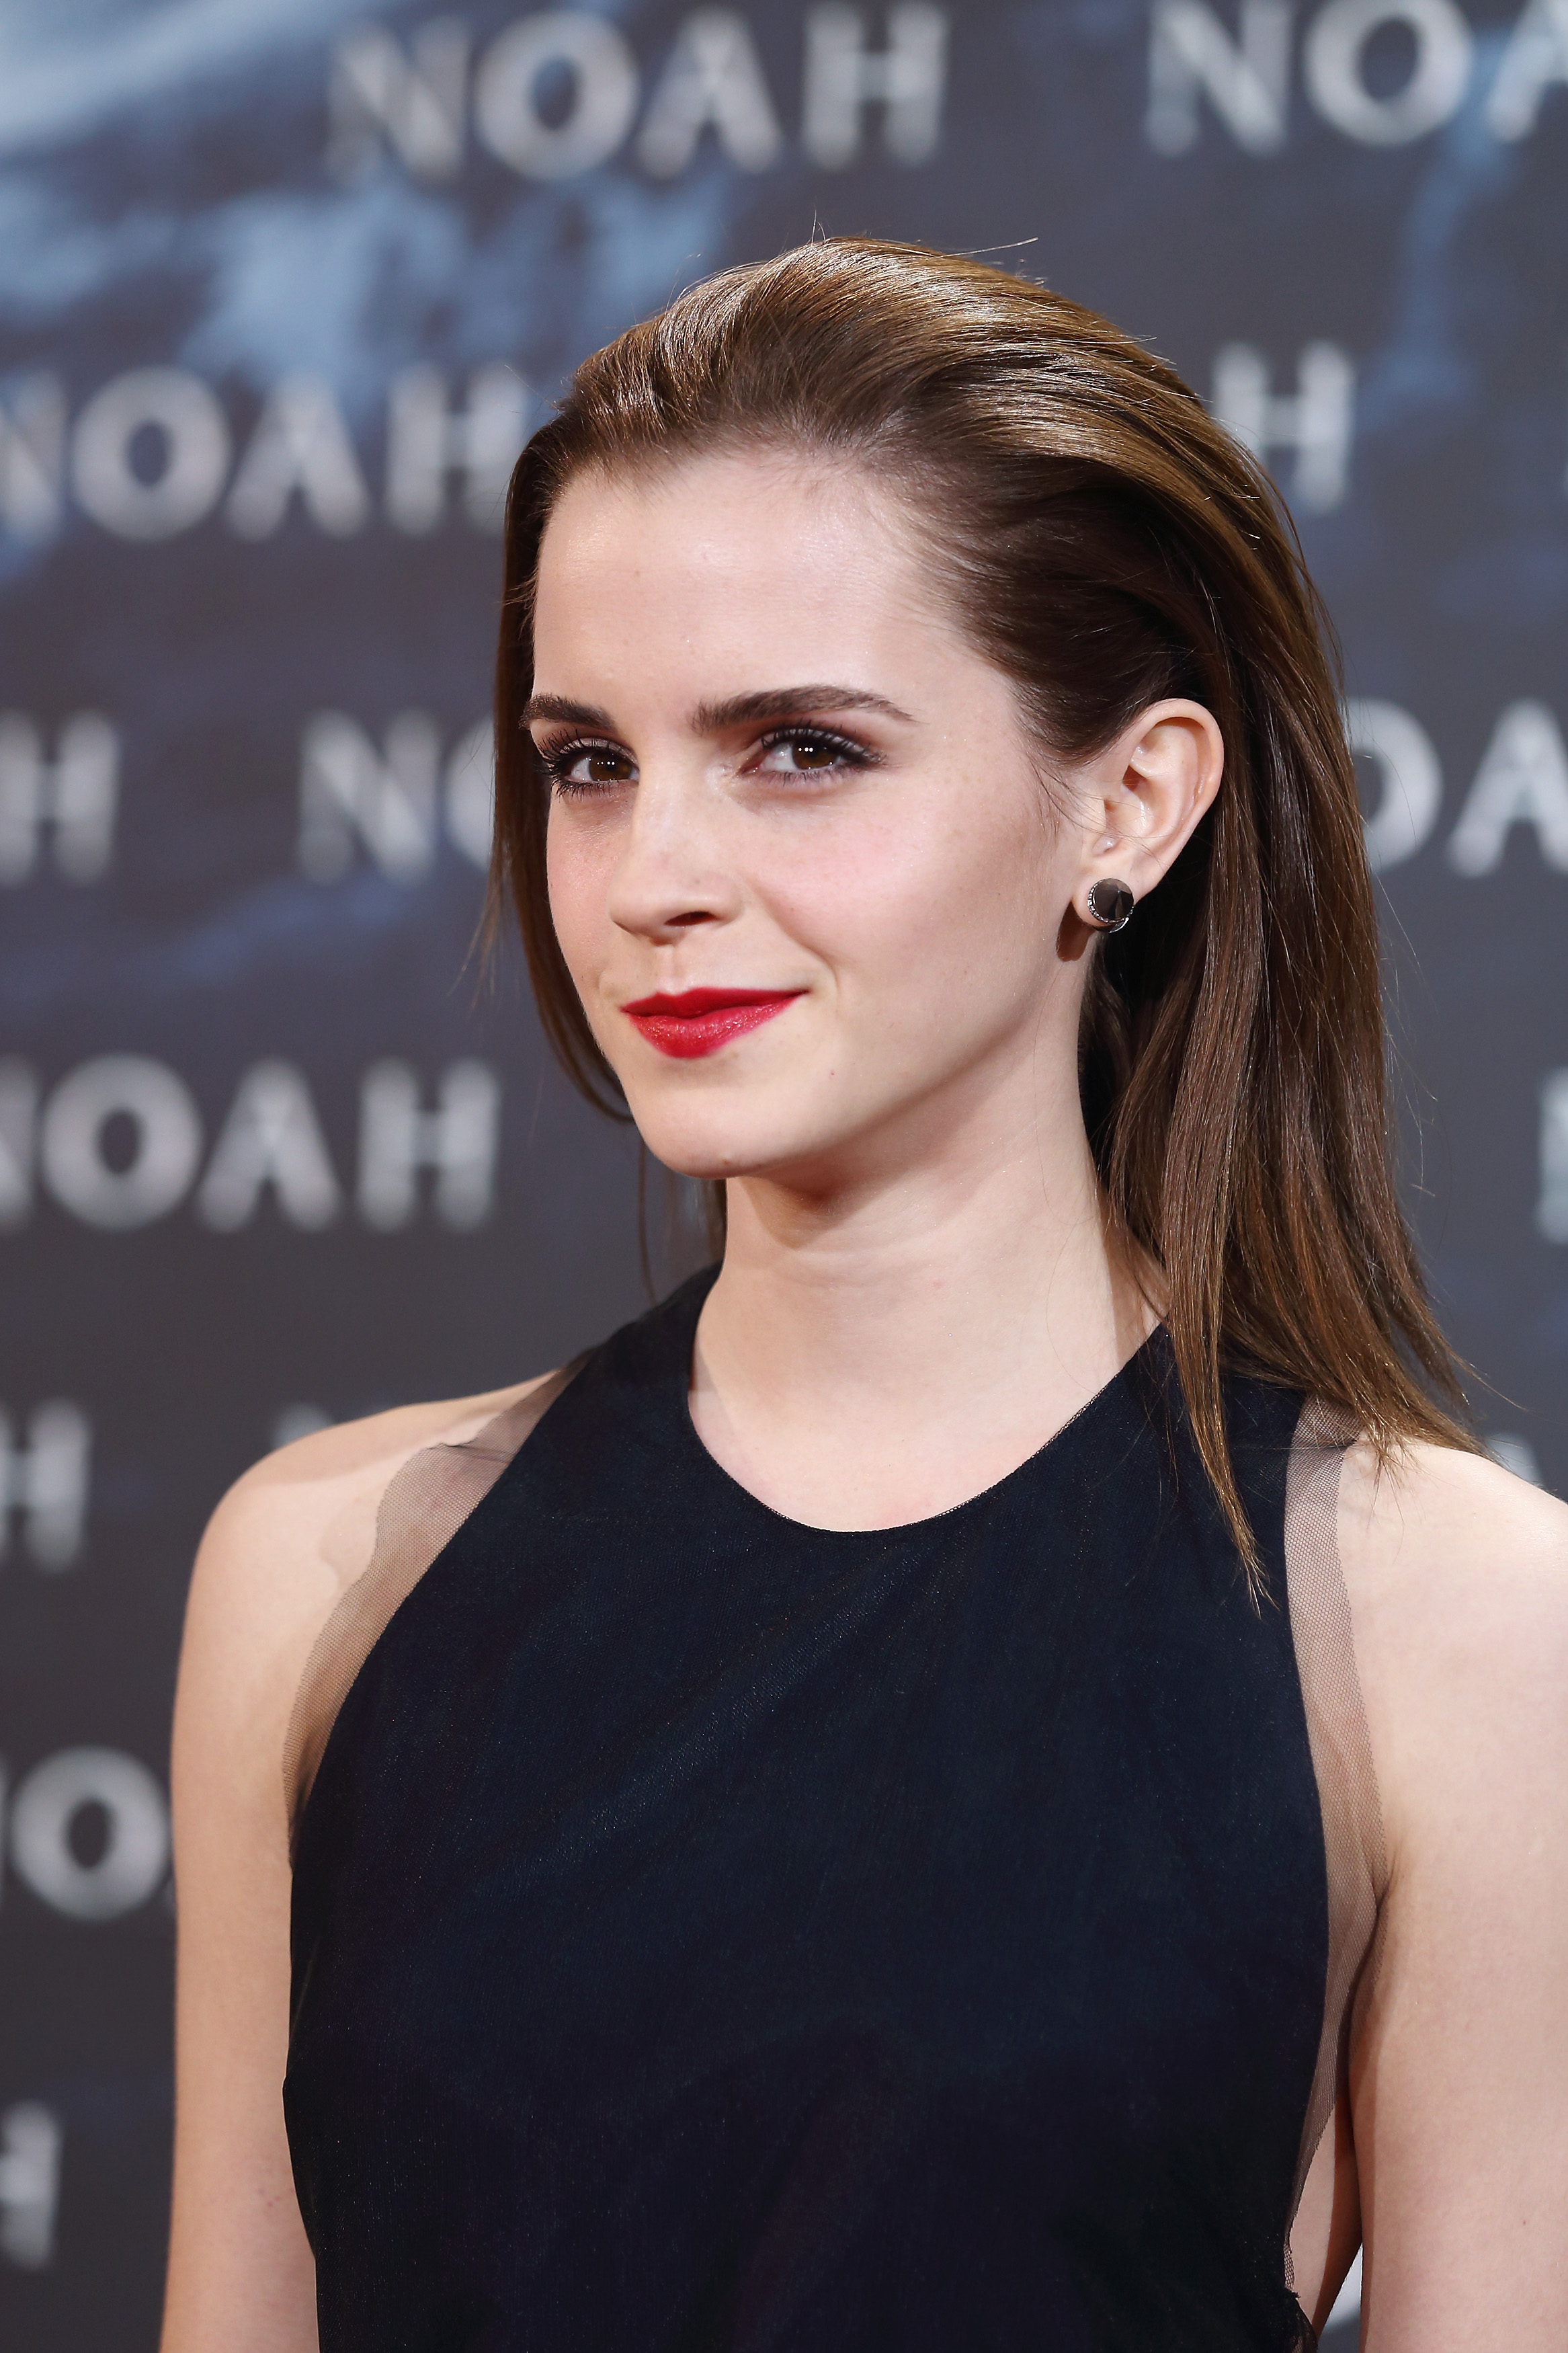 feminism helped emma watson handle her fame & take control of her